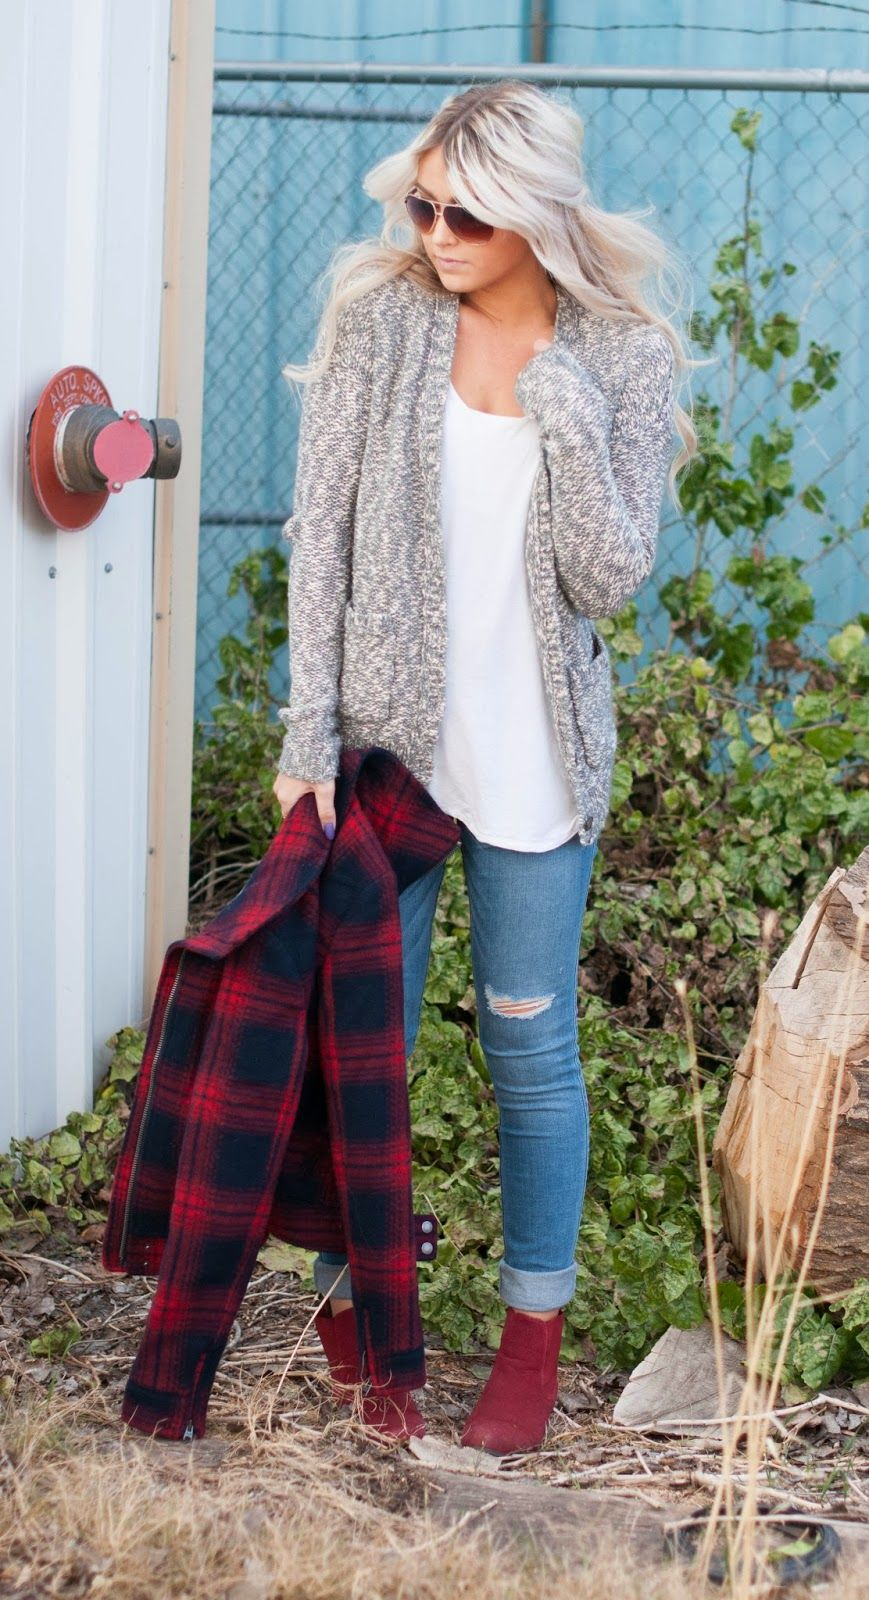 Flannel jeans and boots  cozy sweater u flannel jacket u distressed denim u ankle boots